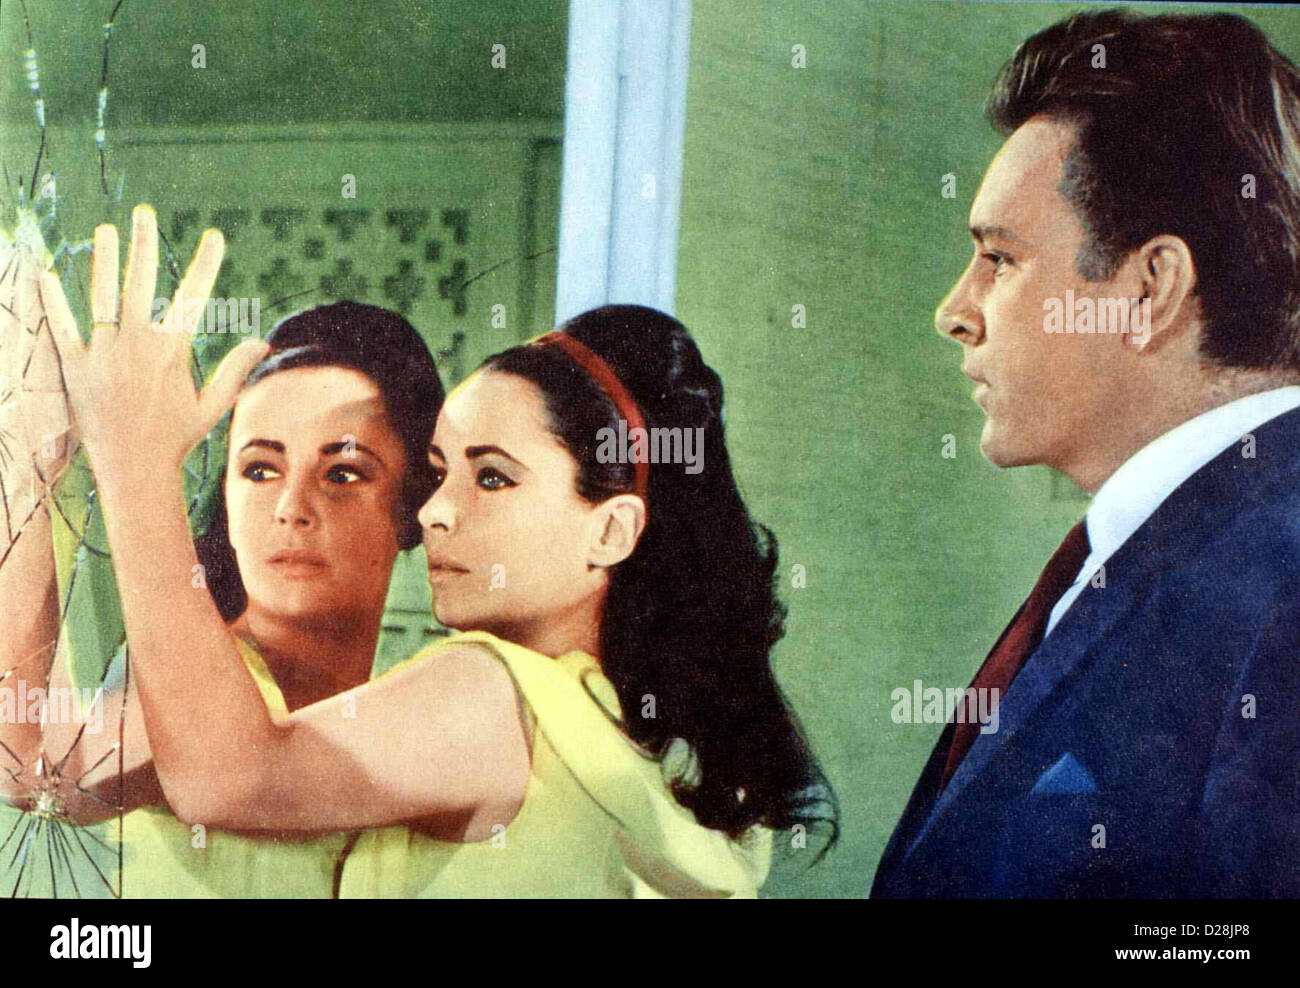 Hotel International VIP, Frances (Elizabeth Taylor), Paul (Richard Burton) *** lokalen Caption *** 1963-- Stockbild